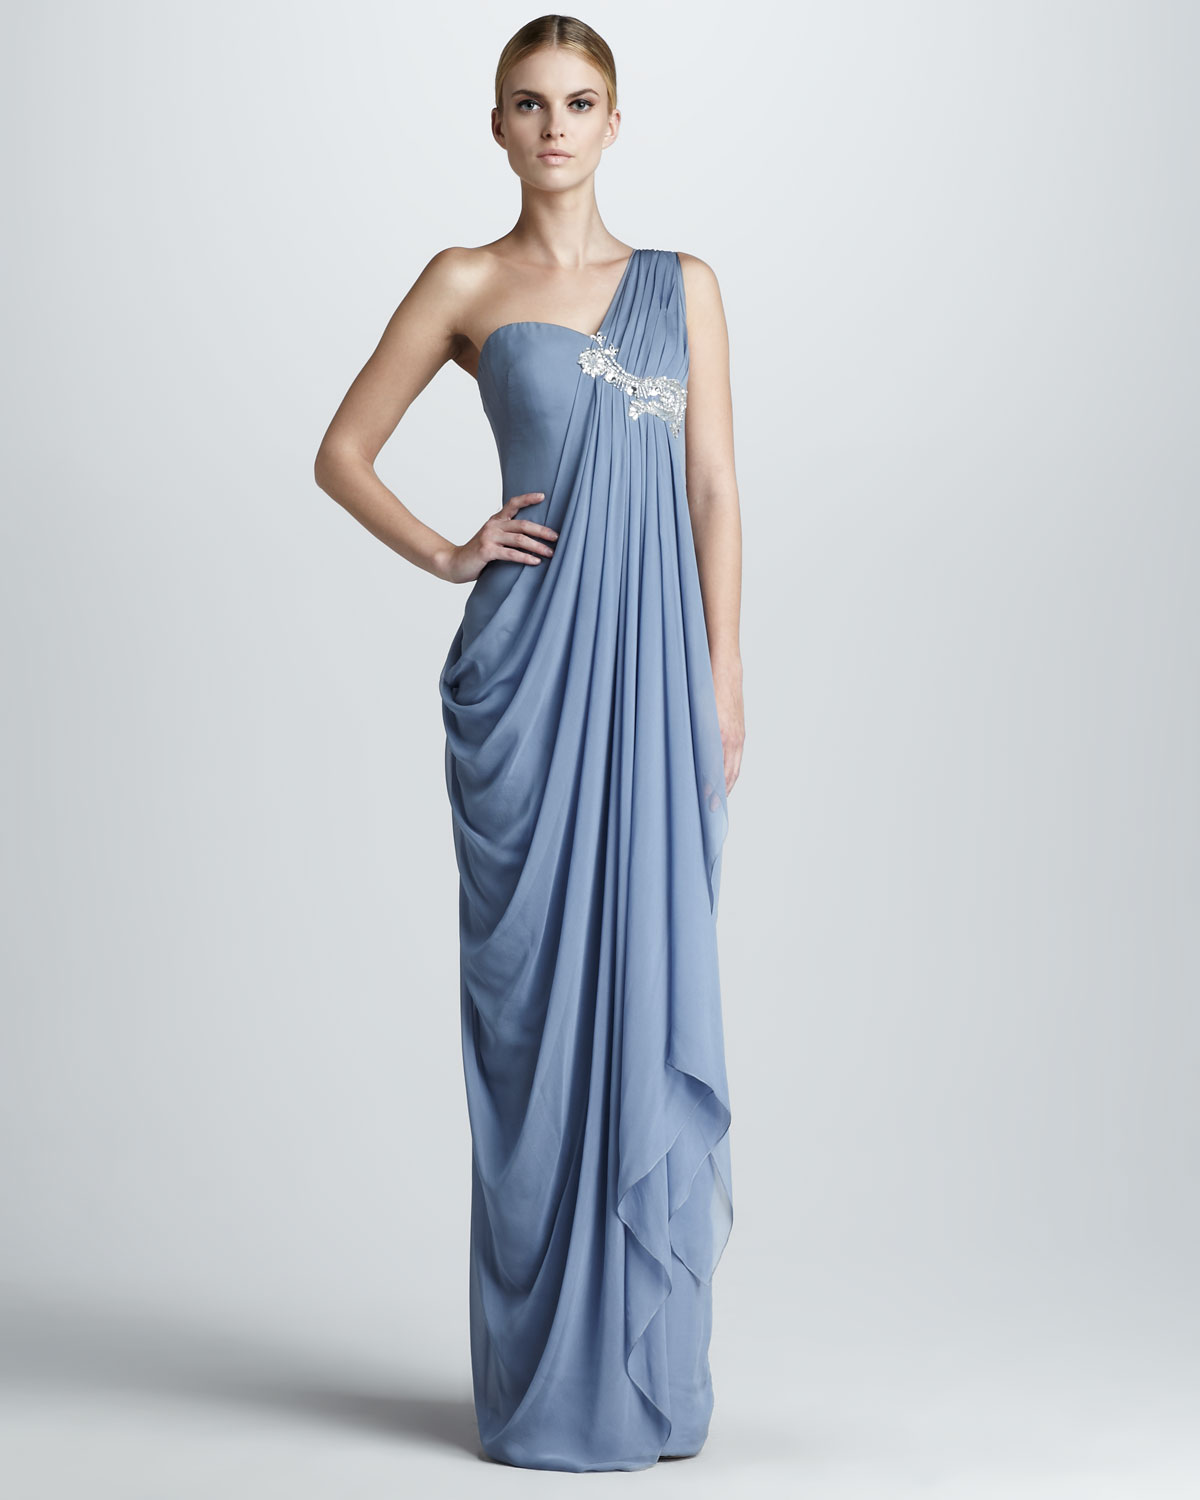 Lyst - Notte By Marchesa Embroidered Draped Gown in Blue